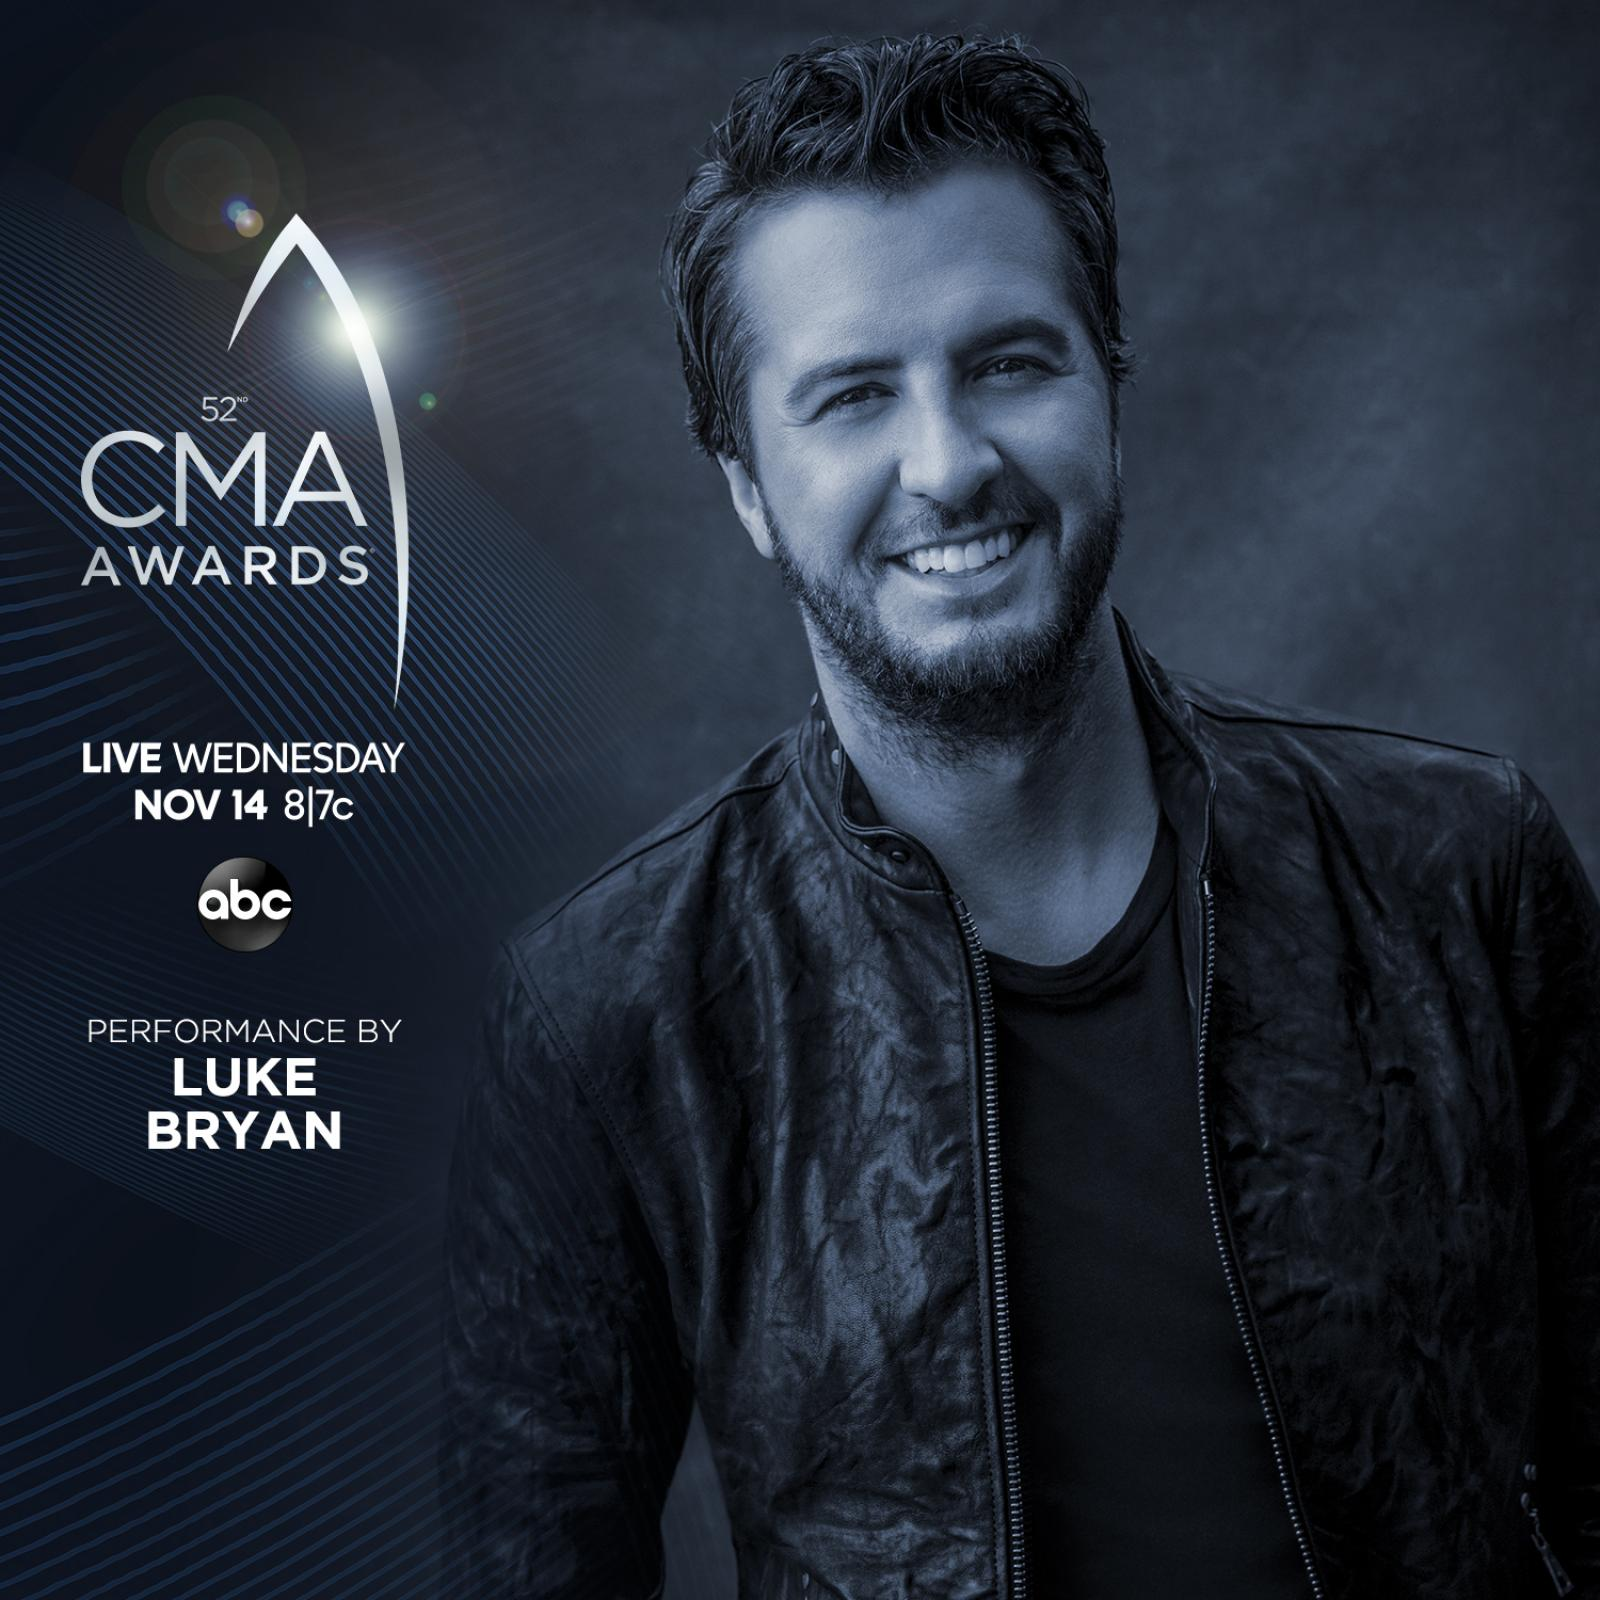 Luke Slated To Perform At 52nd CMA Awards!